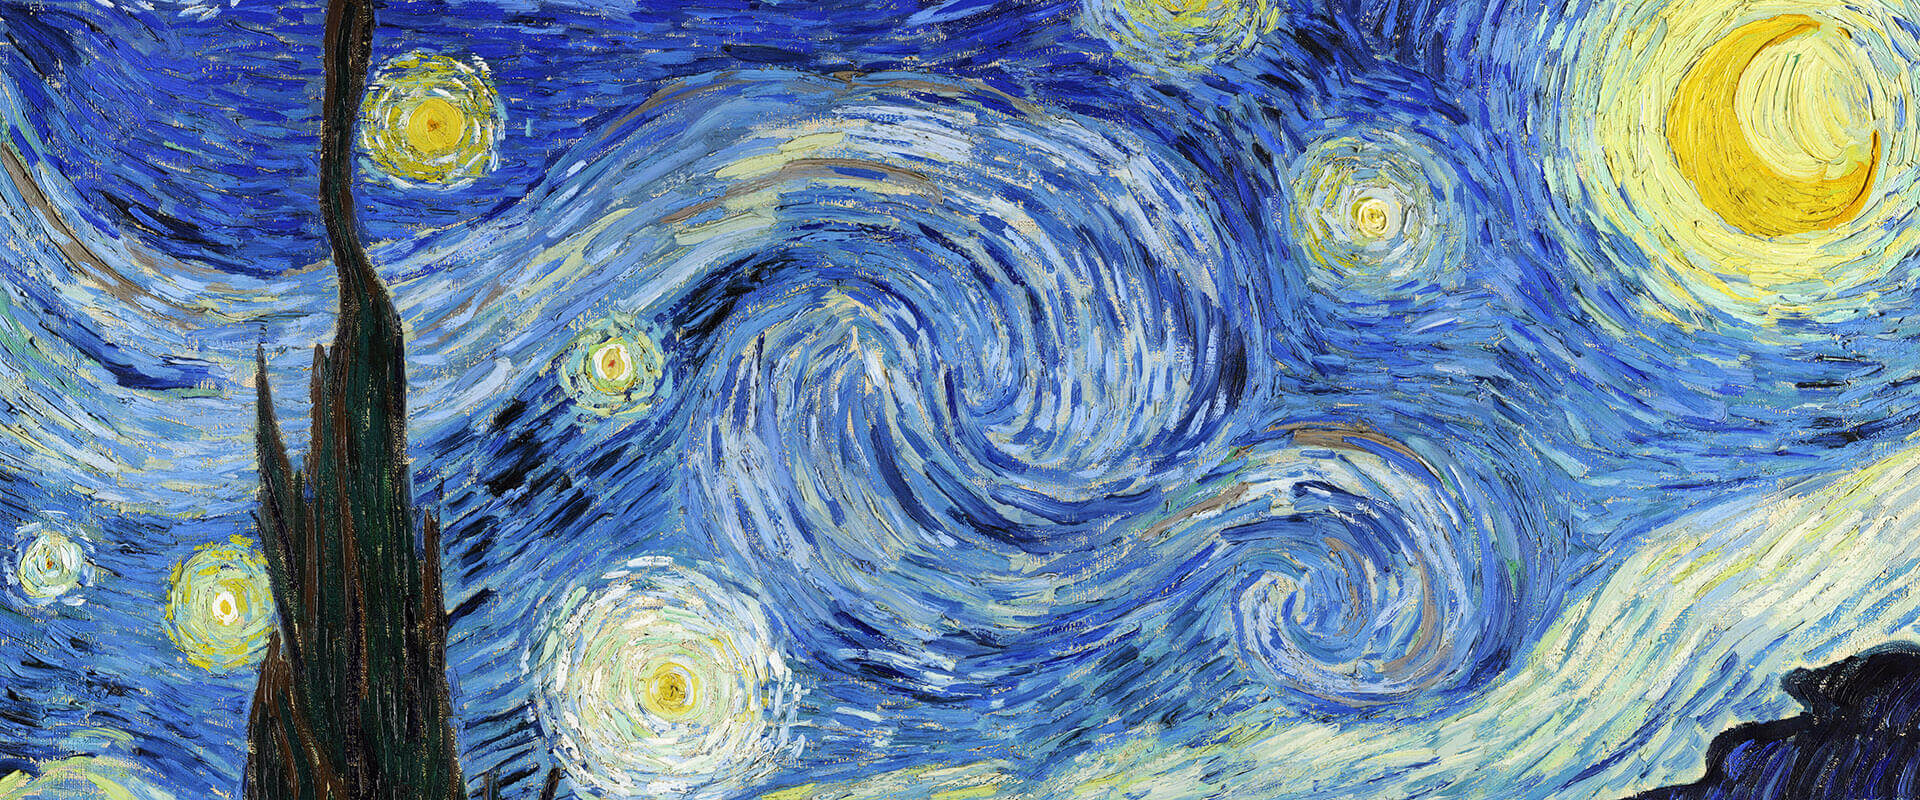 Vincent Van Gogh Paintings | Buy Posters, Frames, Canvas, Digital Art & Large Size Prints Of The Famous Old Master's Artworks